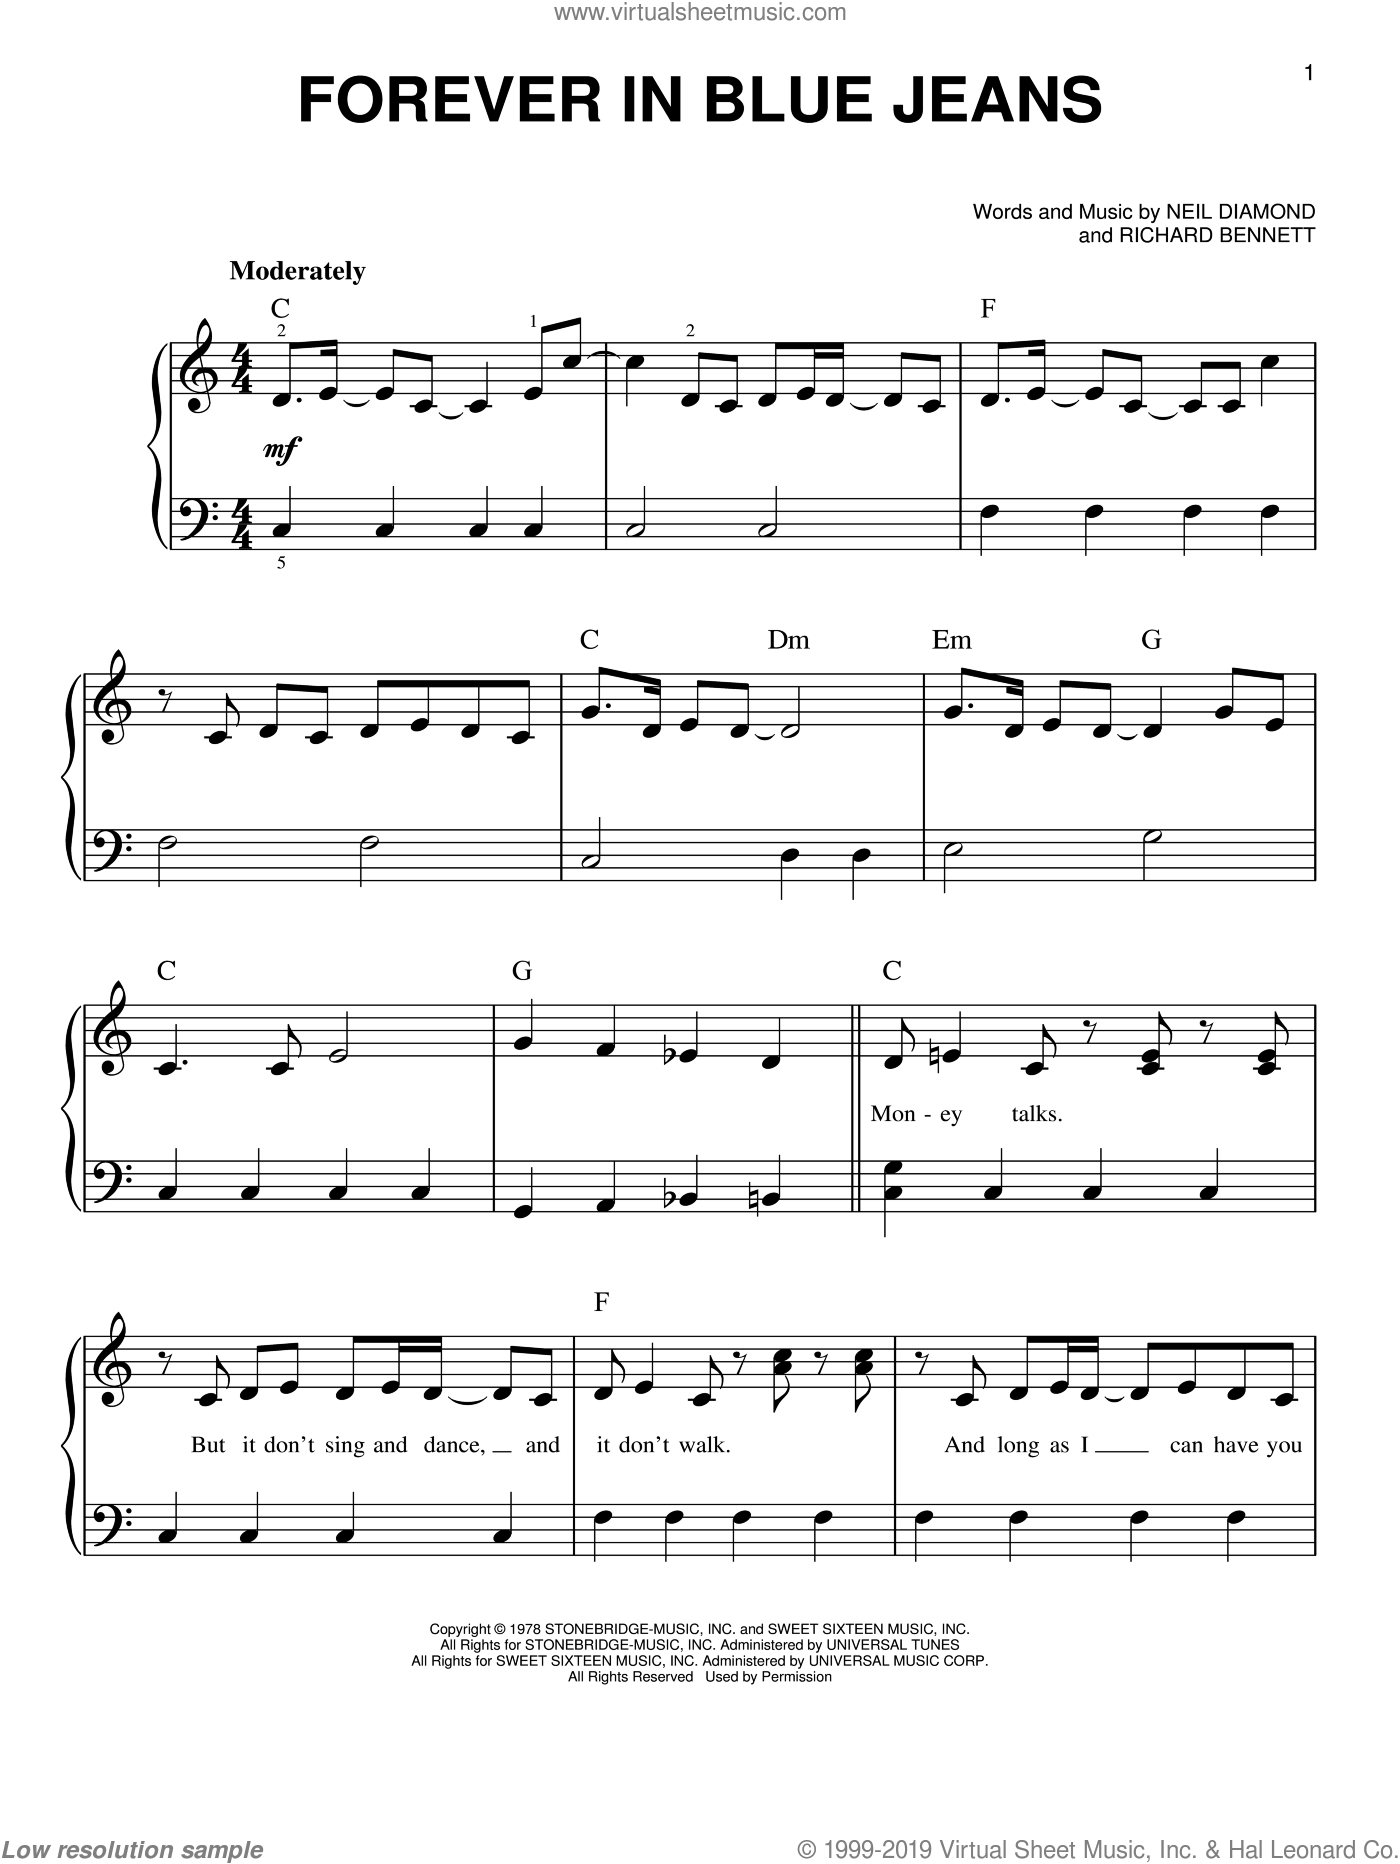 Forever In Blue Jeans sheet music for piano solo by Neil Diamond and Richard Bennett, easy skill level